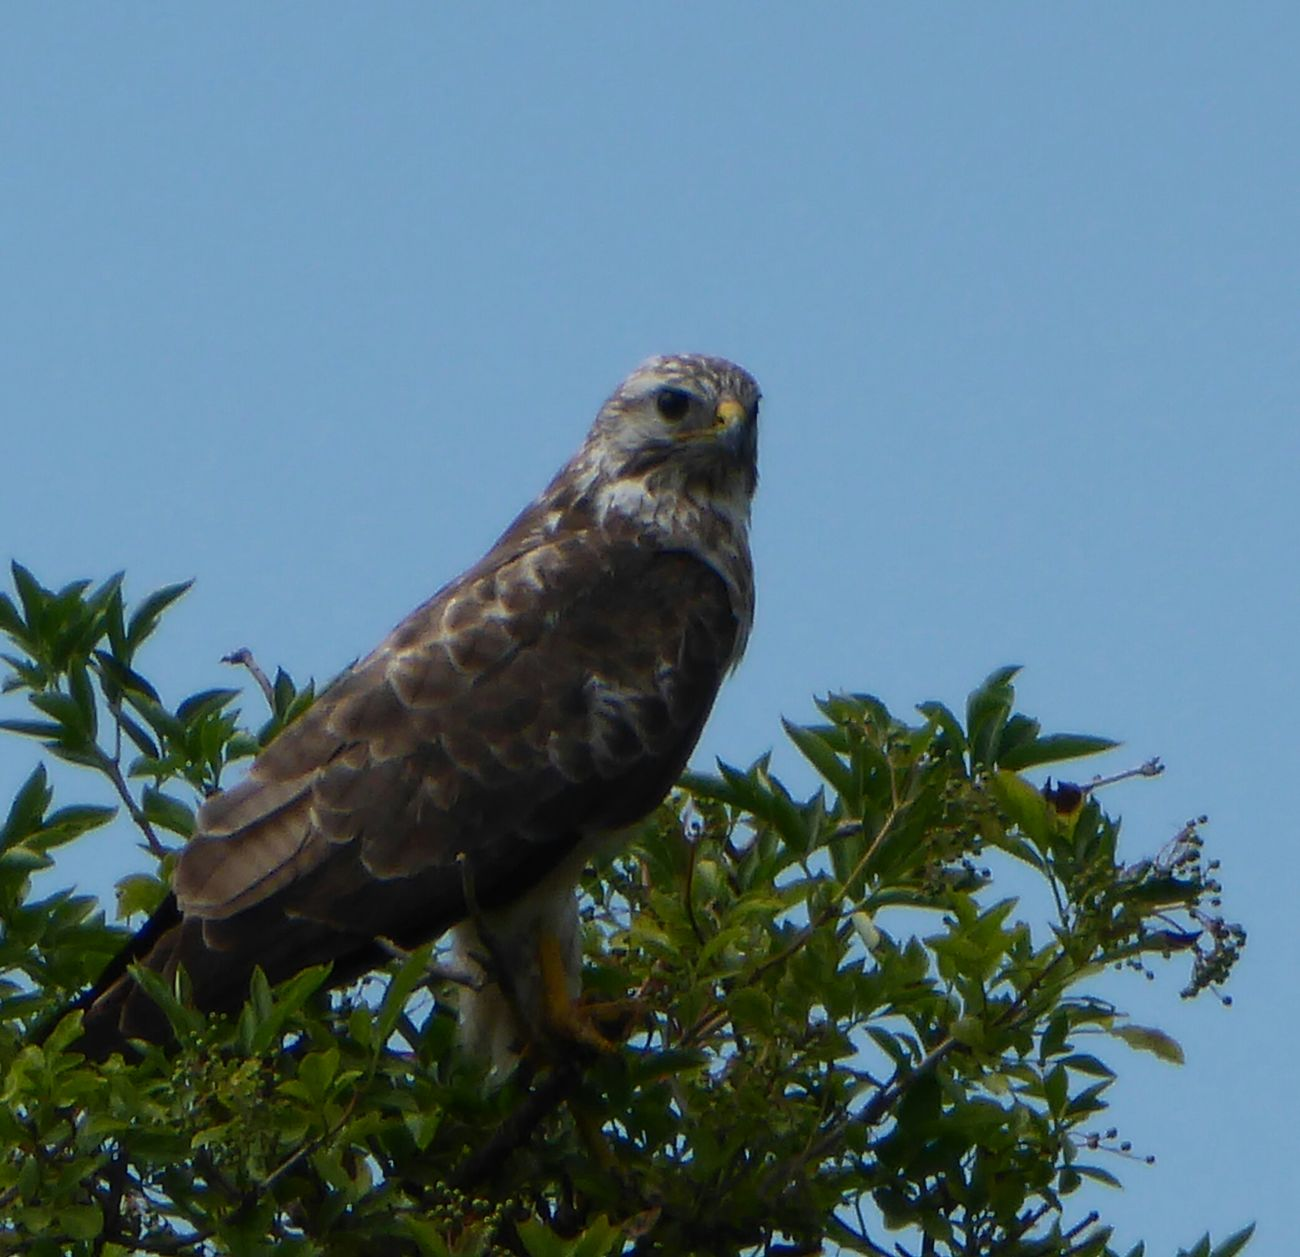 Animals In WildlifeMäusebussard Common Buzzard Animals In The Wild Magicmoment Enjoying Life Nature Photography Birdwatching Birds_collection Beautiful Nature Animals Posing Birds Of EyeEm  Naturelovers Hi! On The Way Birds In The Wild Adventure Club Showcase July